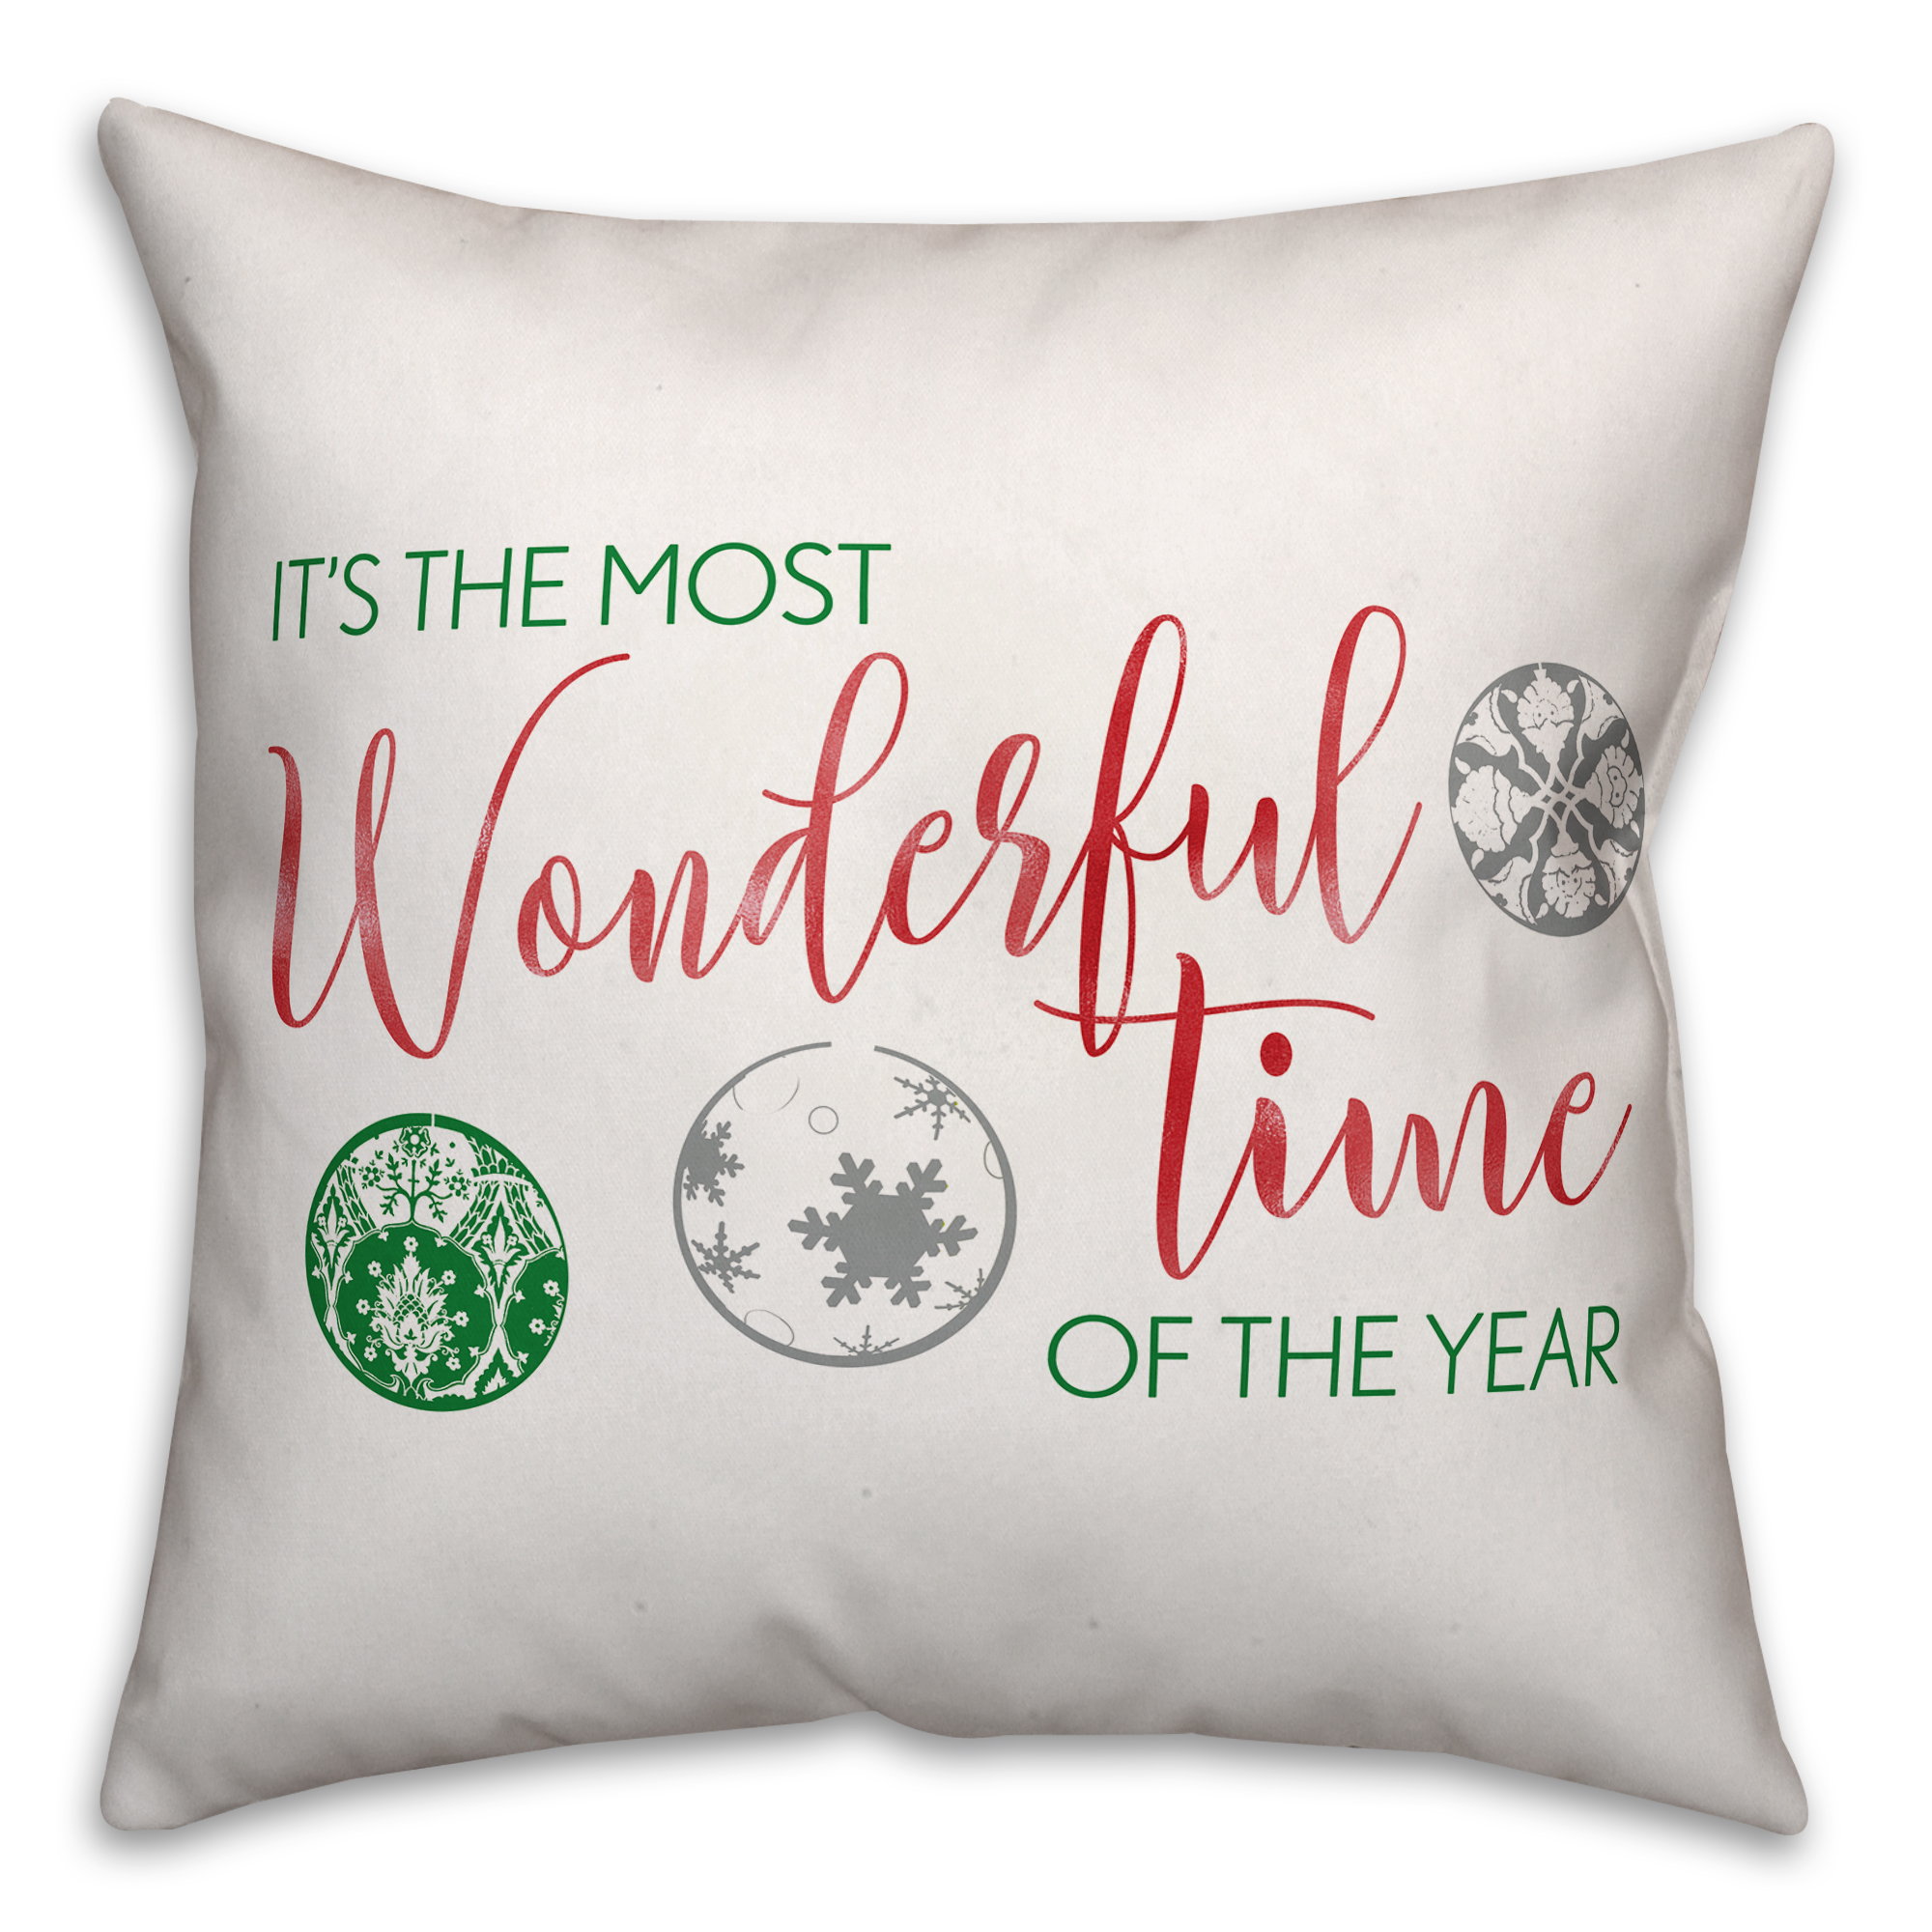 It's the Most Wonderful Time of the Year 20x20 Spun Poly Pillow